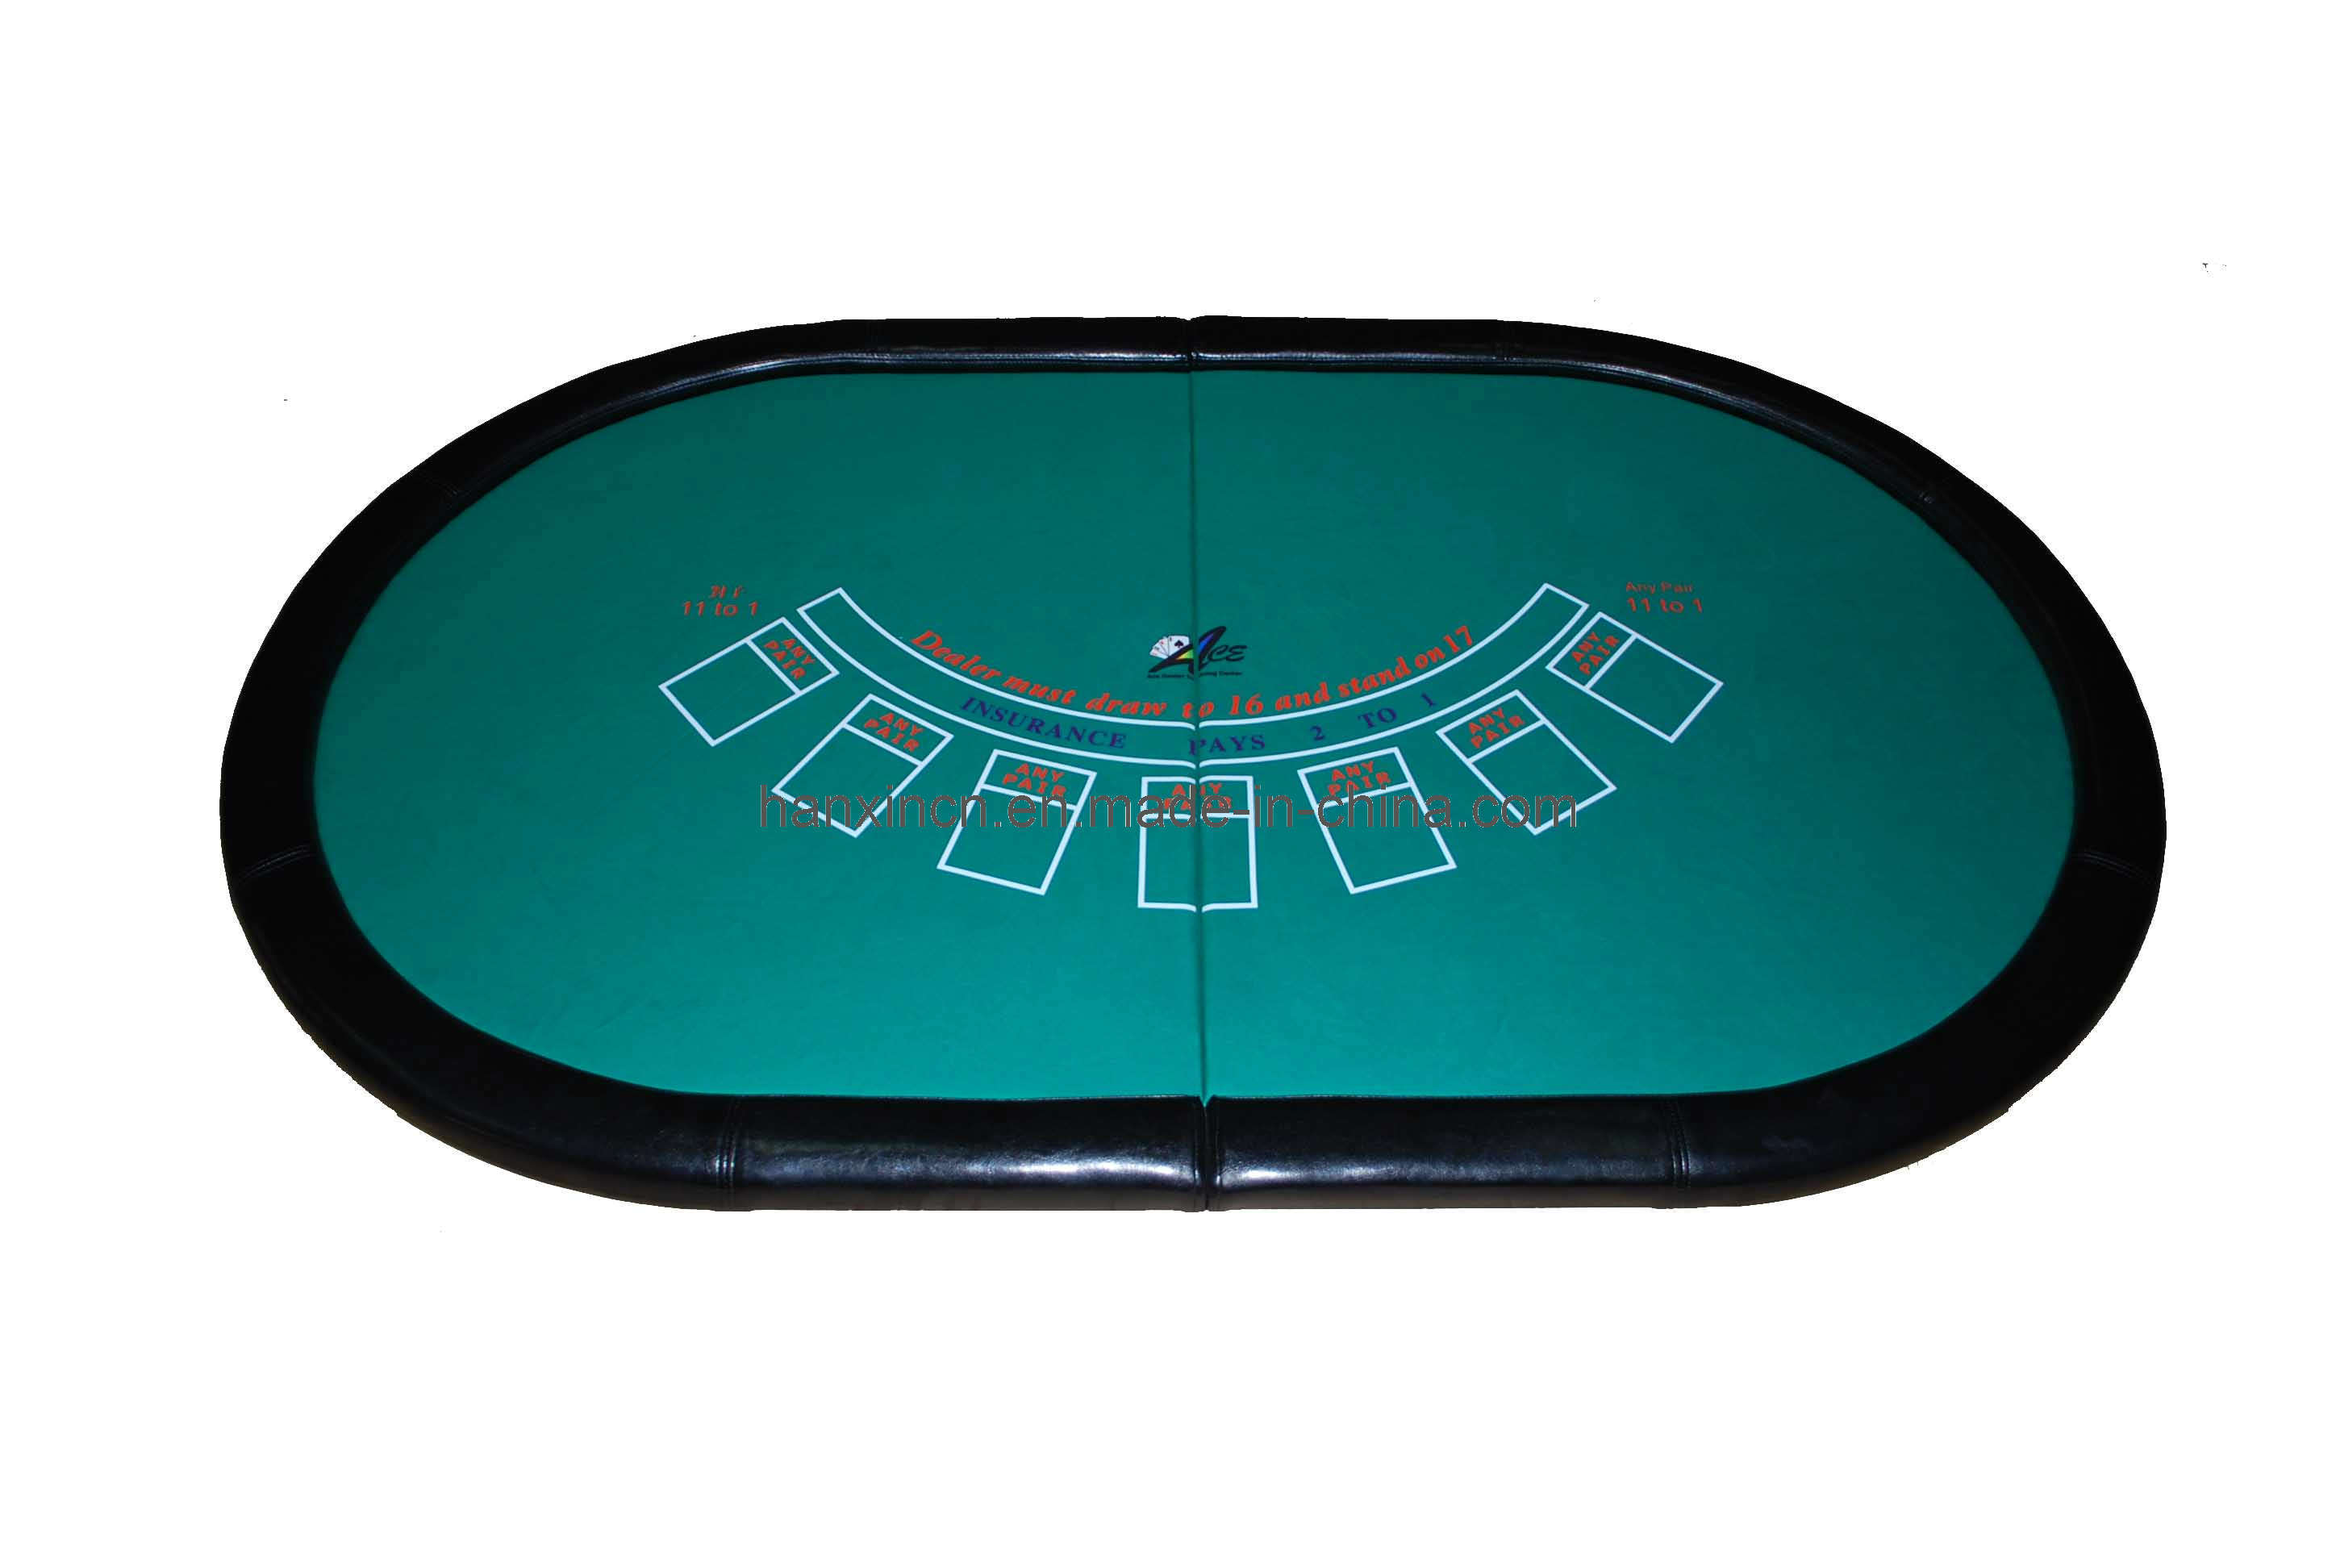 Perfect Blackjack Table Top 2896 x 1944 · 240 kB · jpeg